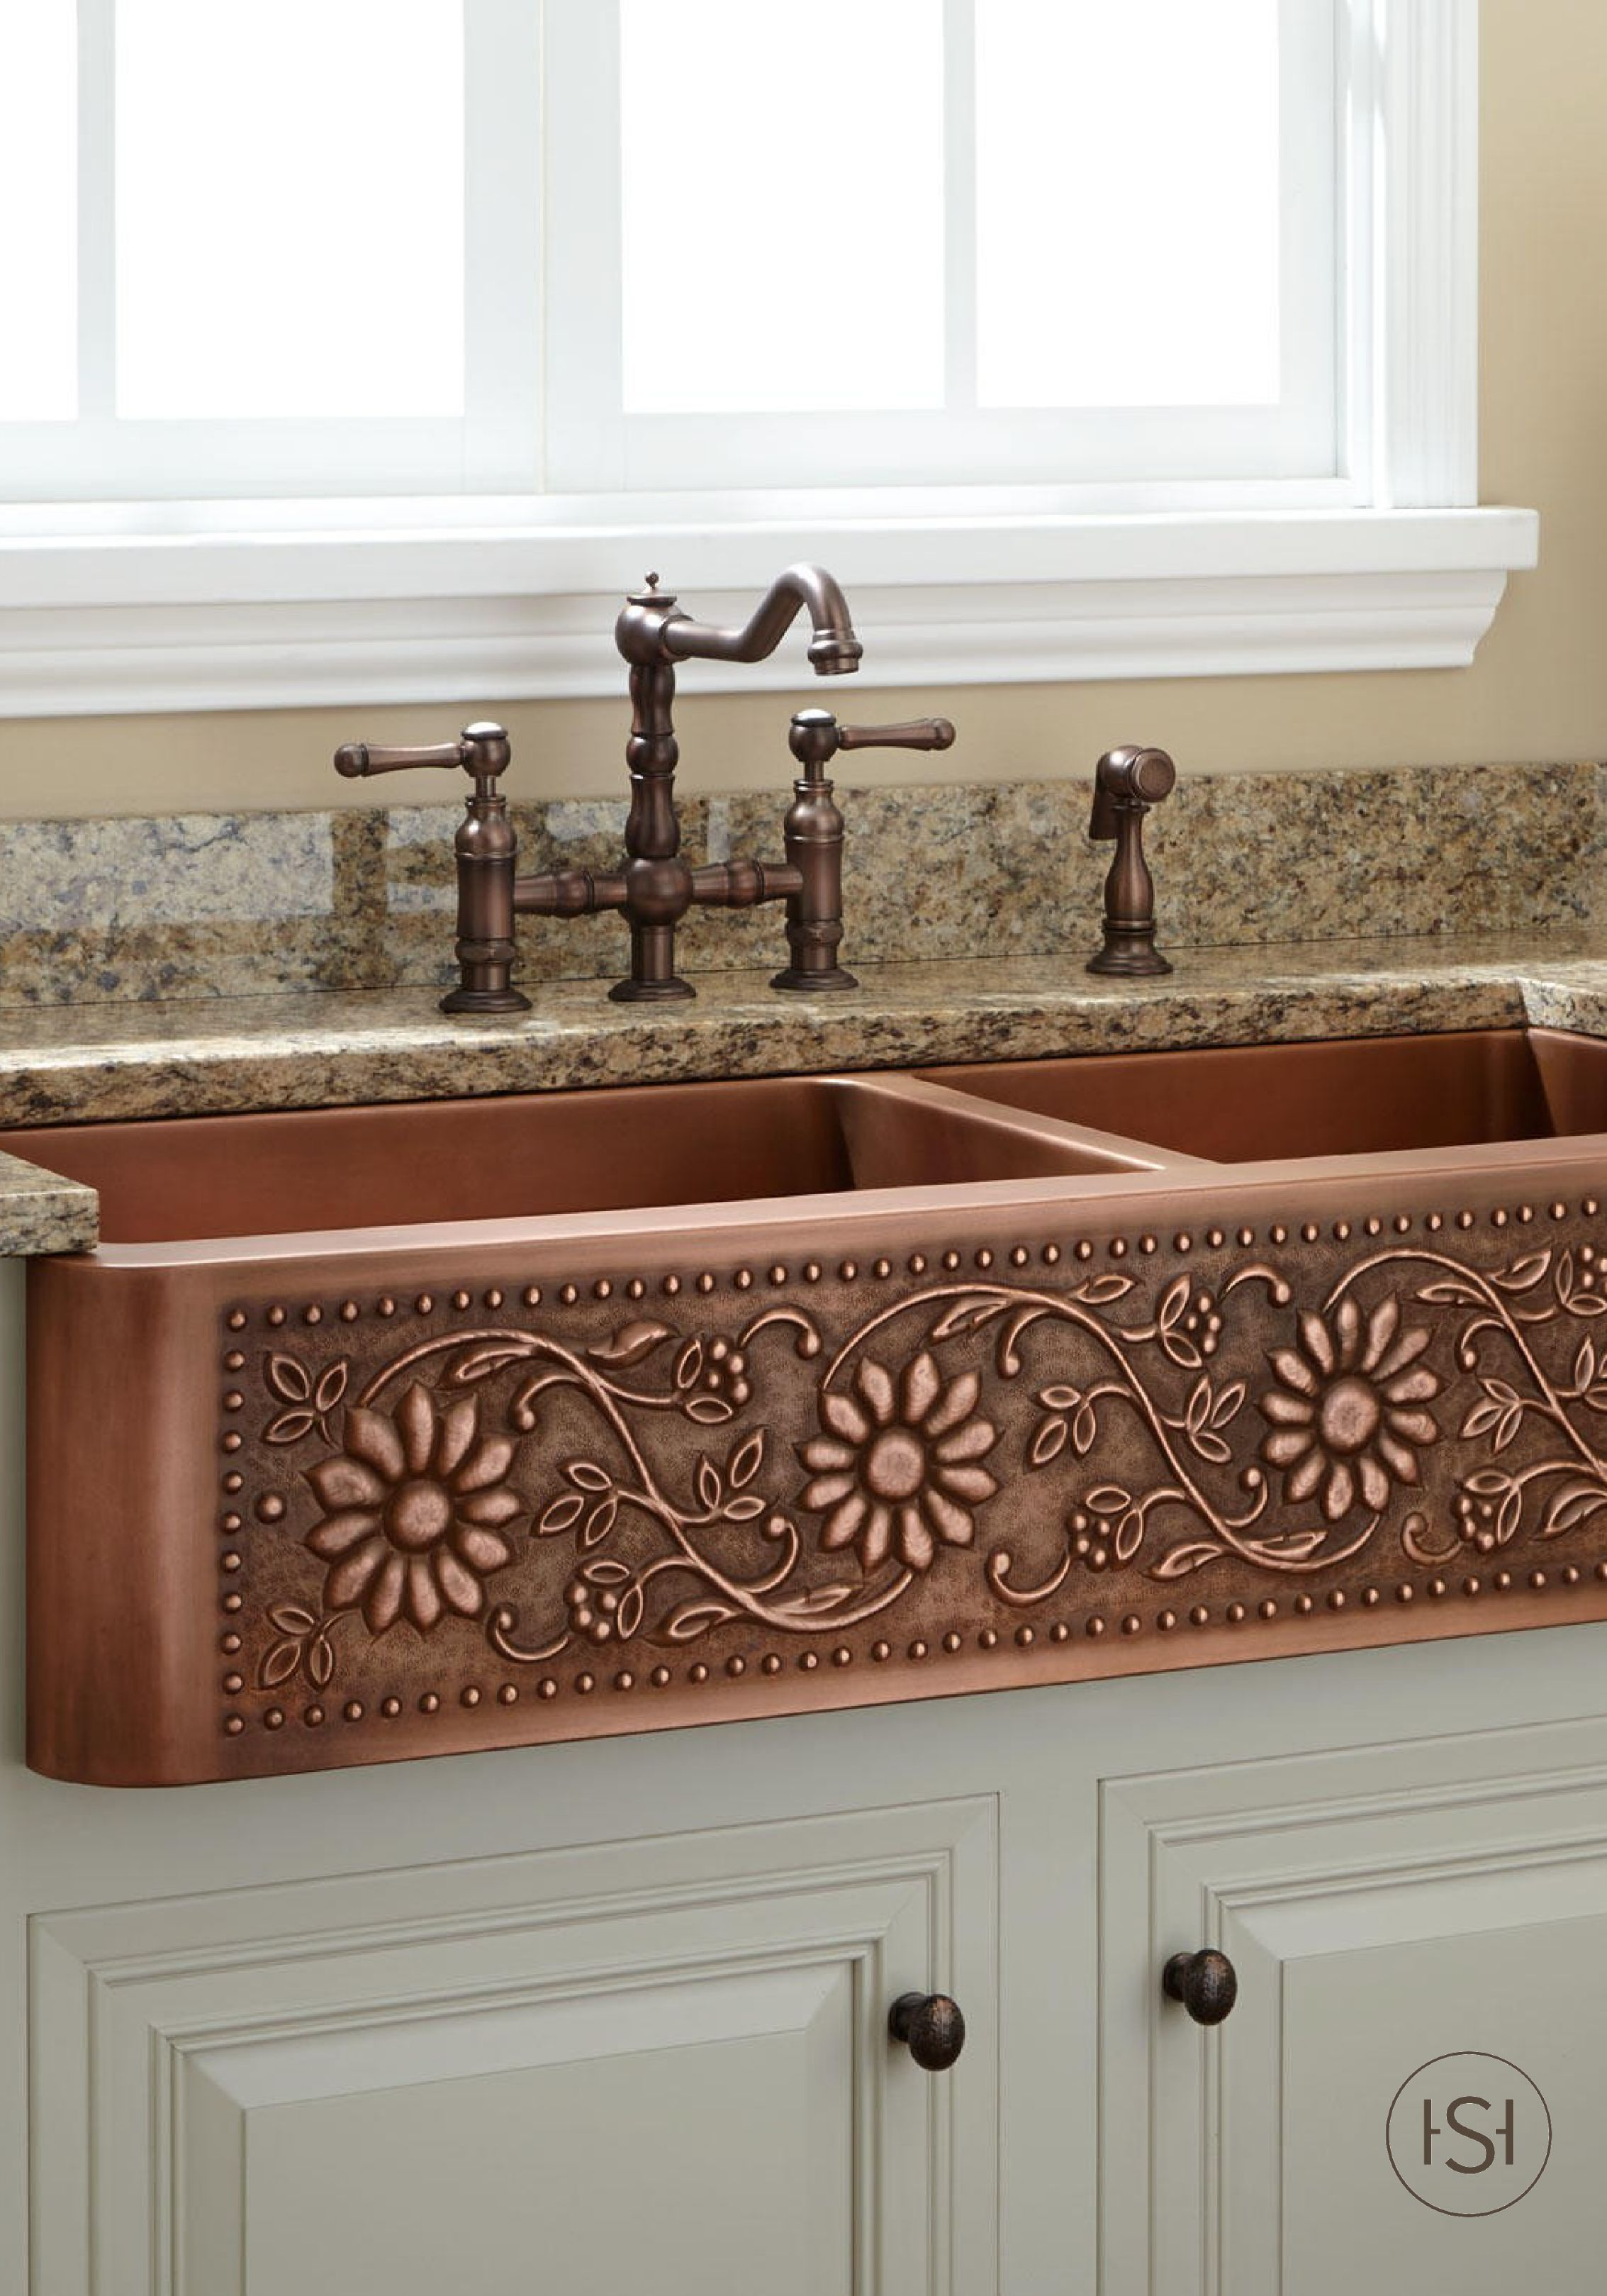 Bring Warmth And Style To Your Cottage Chic Kitchen With A Copper